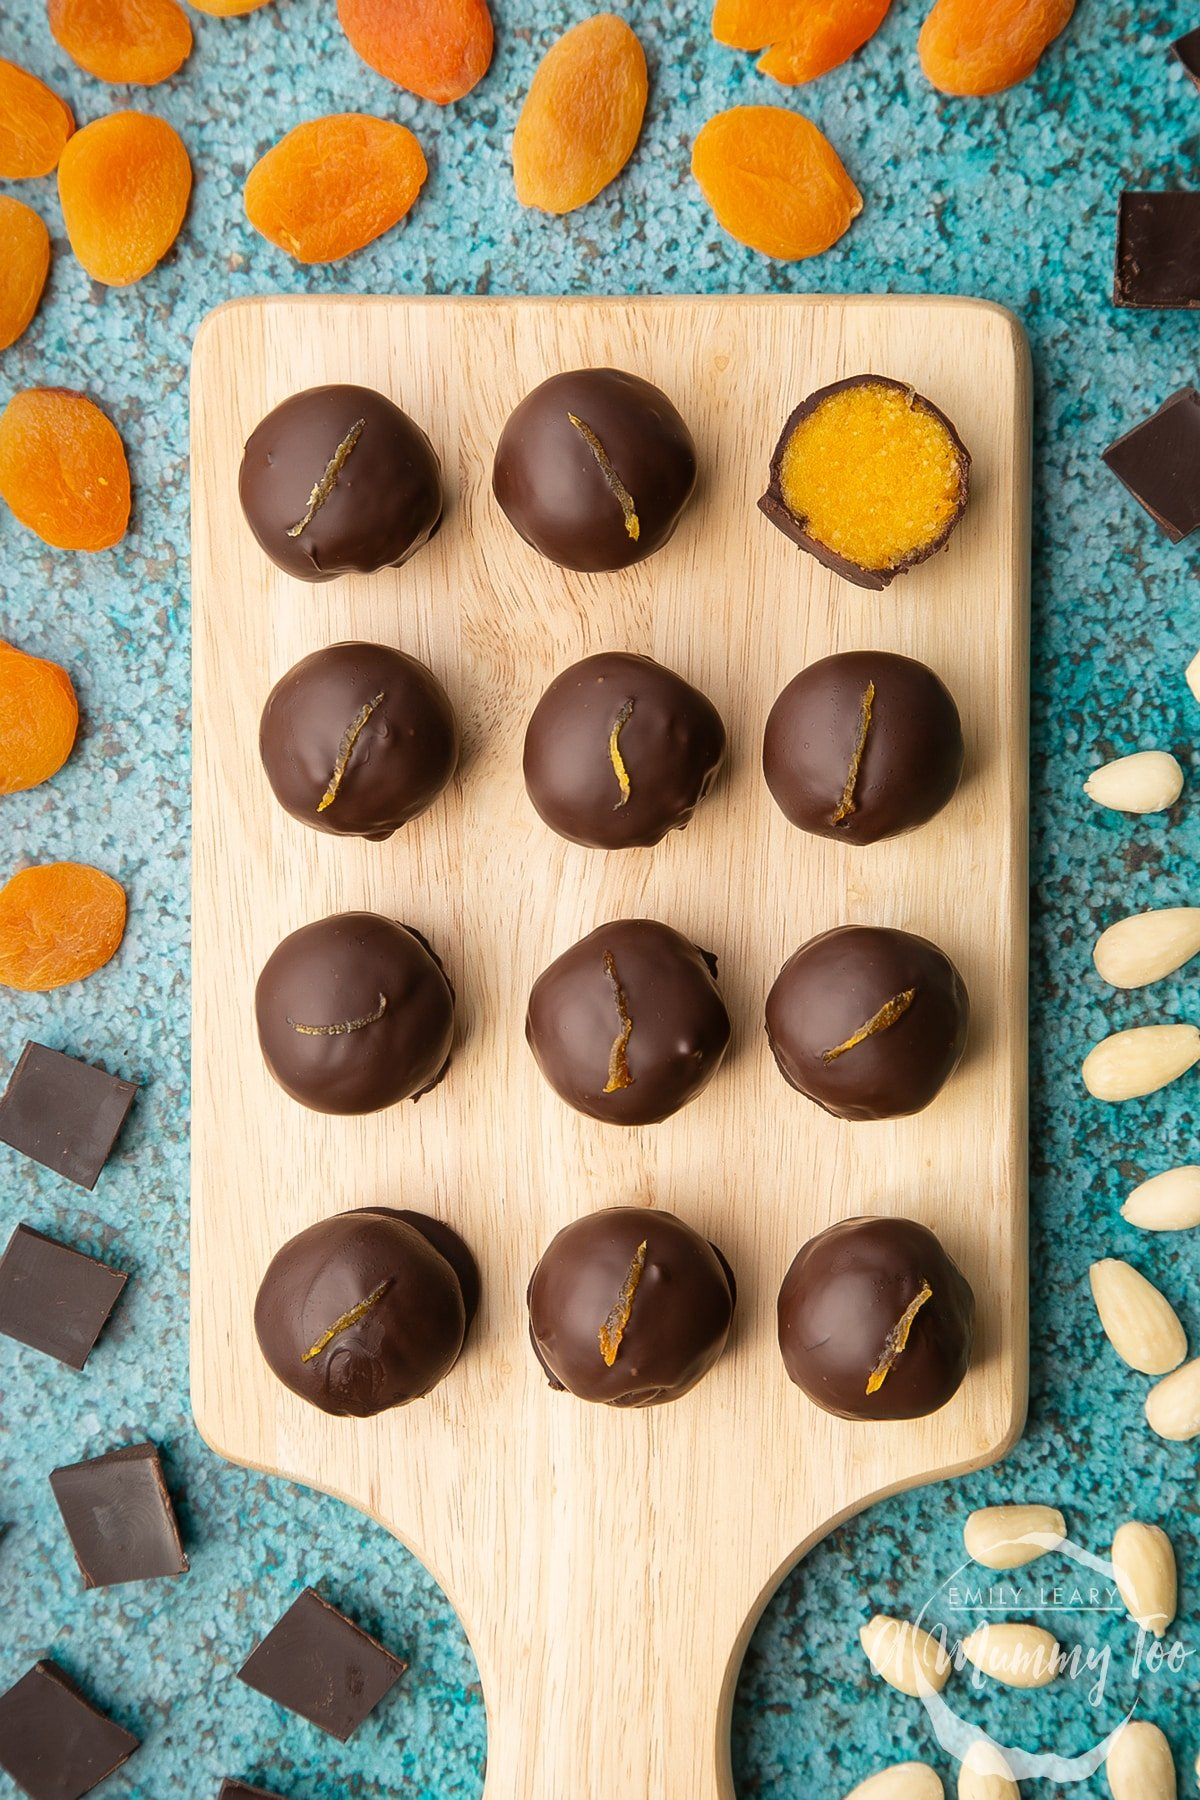 12 chocolate apricot balls arranged on a wooden board. One has been cut in half, revealing the bright orange apricot filling. Dried apricots, blanched almonds and squares of dark chocolate surround the board.